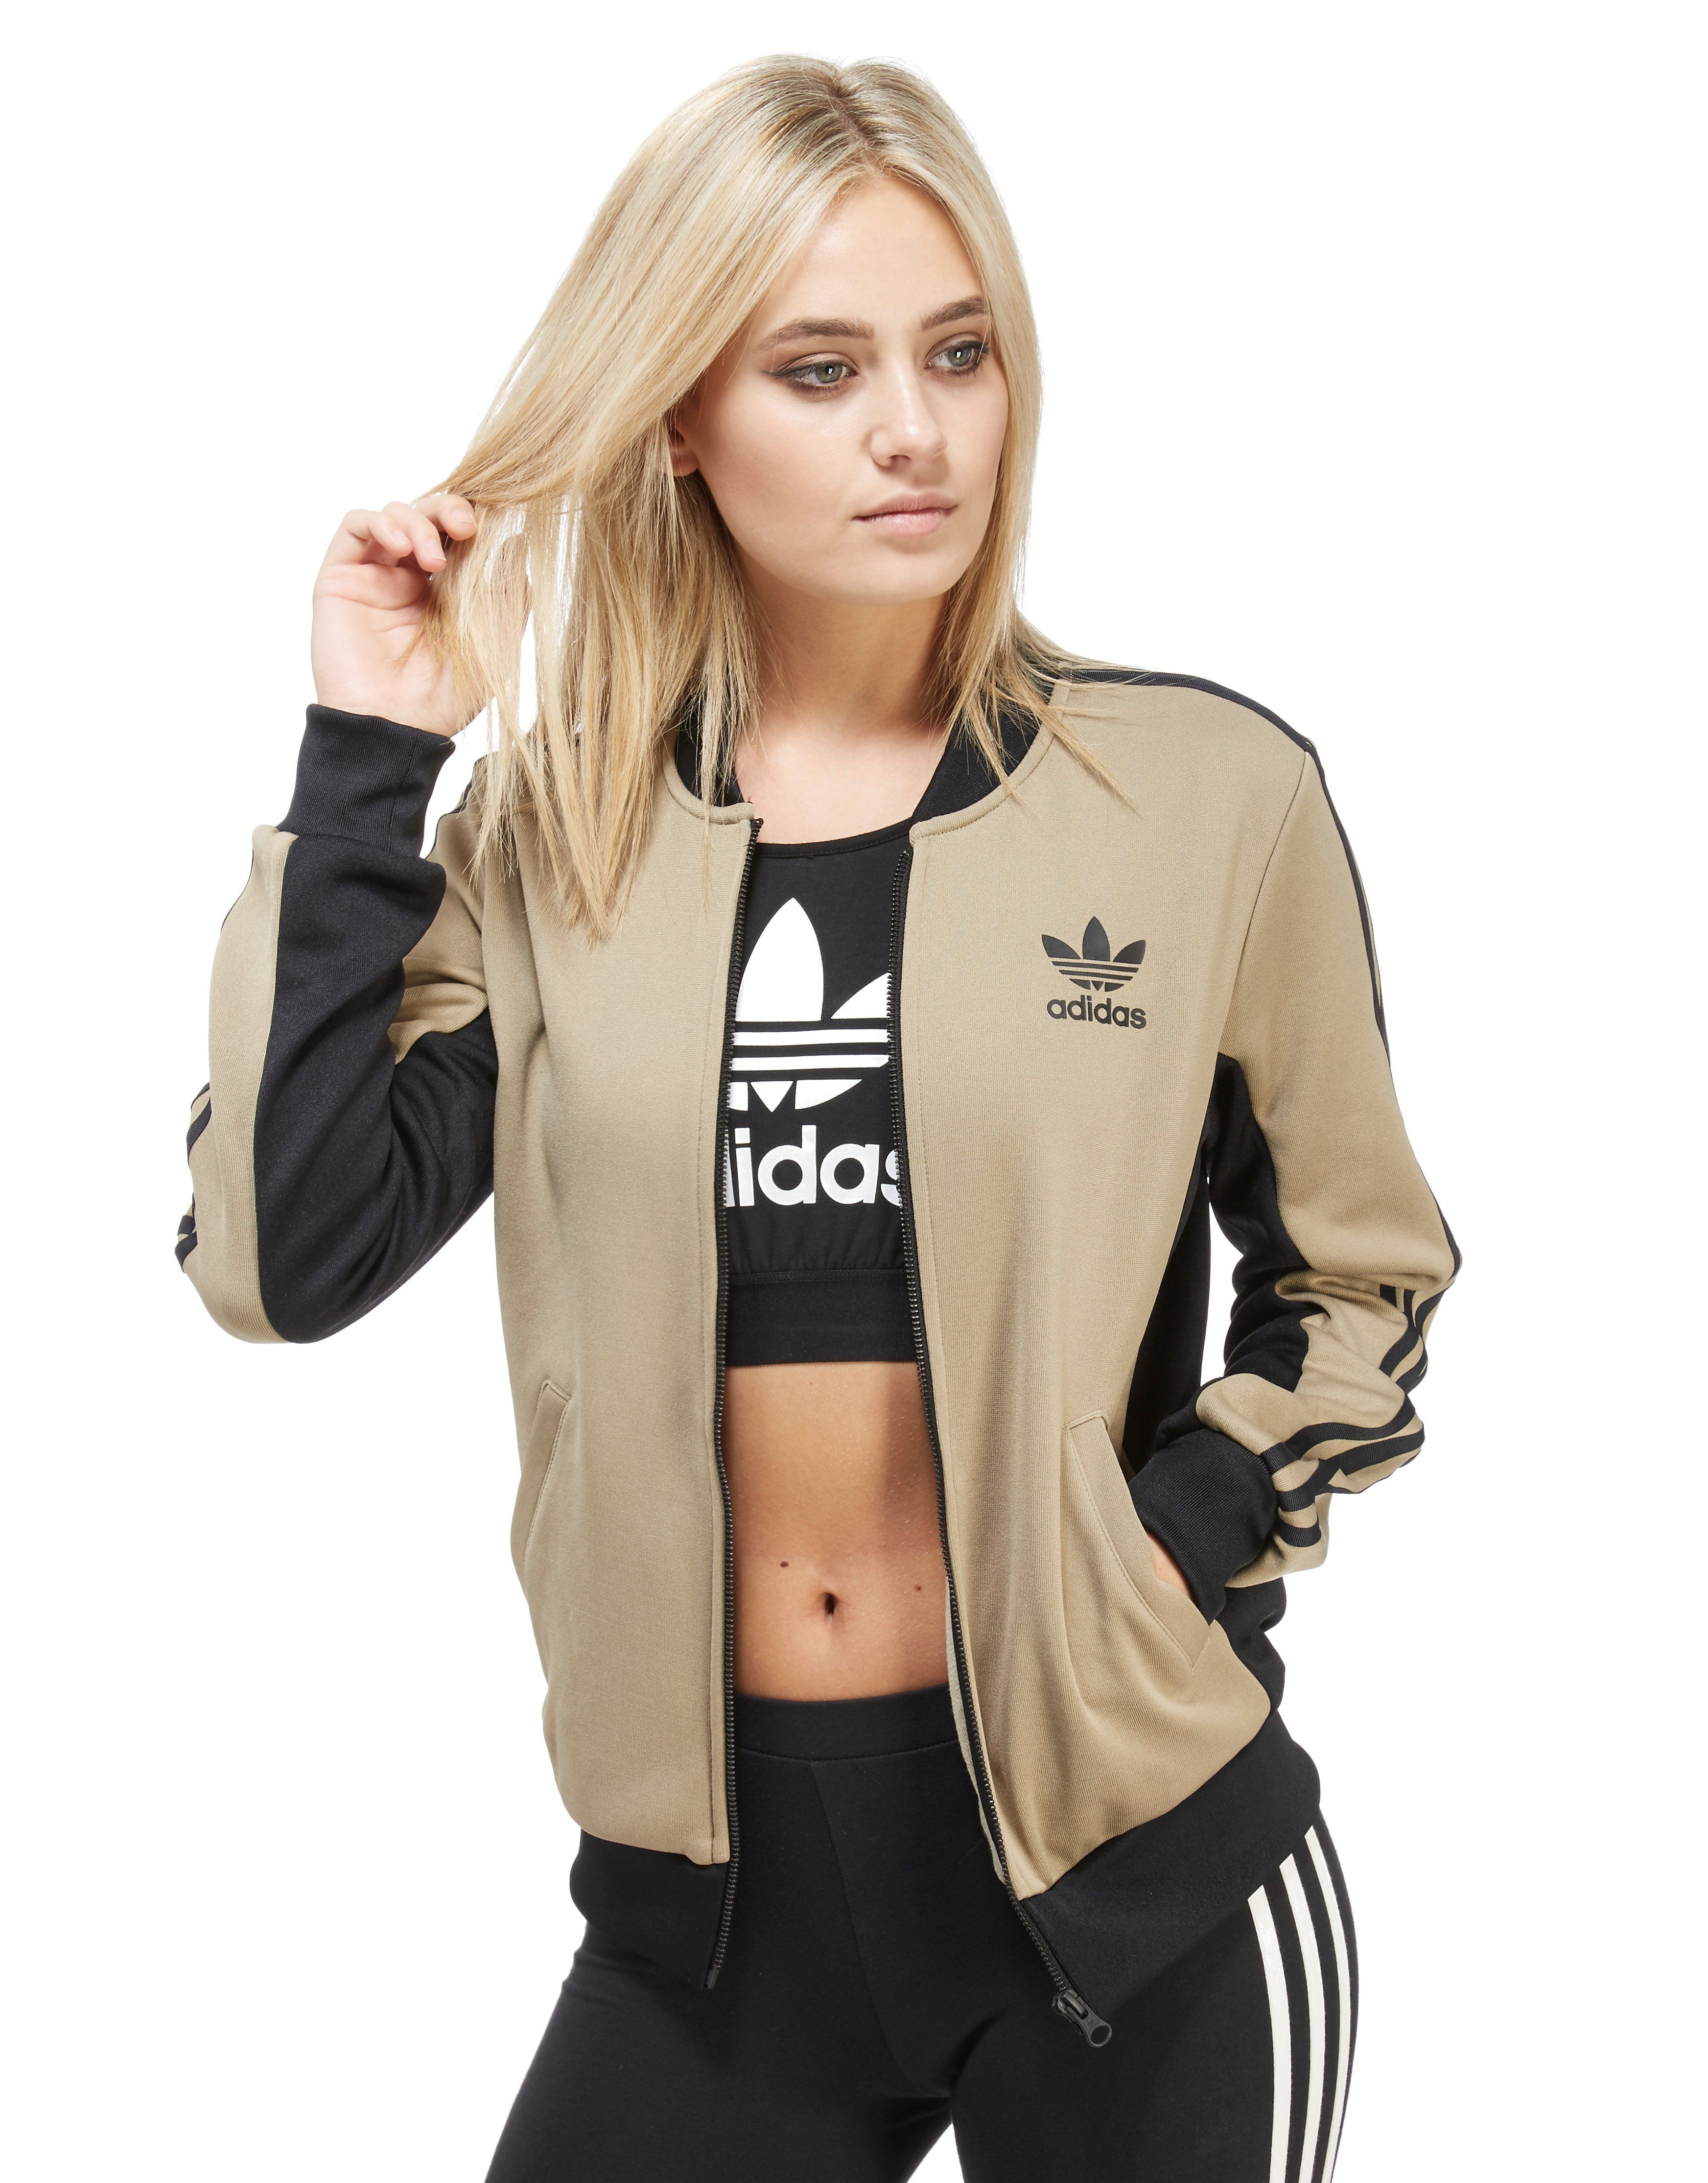 9842f0db3a adidas Originals Supergirl Track Top - Shop online for adidas Originals  Supergirl Track Top with JD